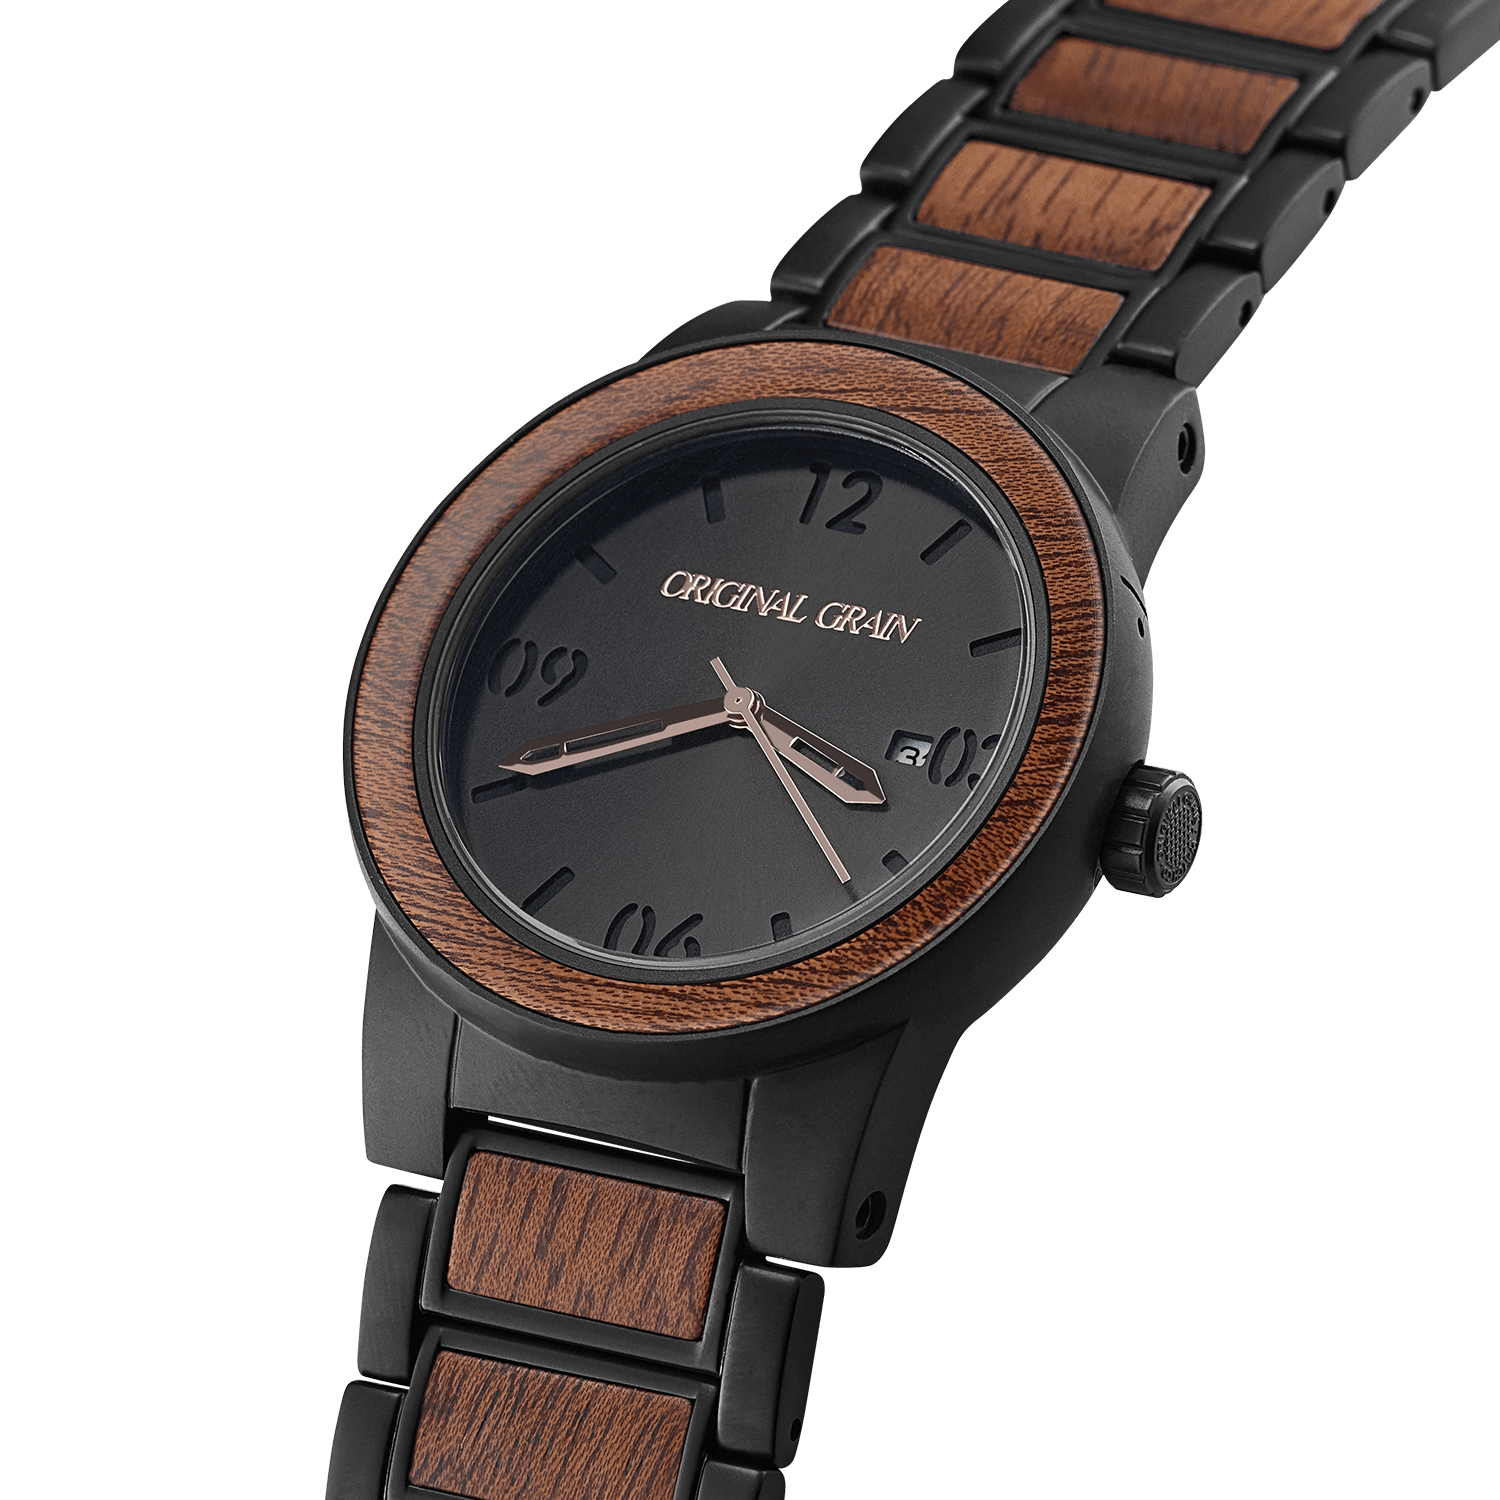 grain men review gift handcrafted for that watch a original gives back wood watches